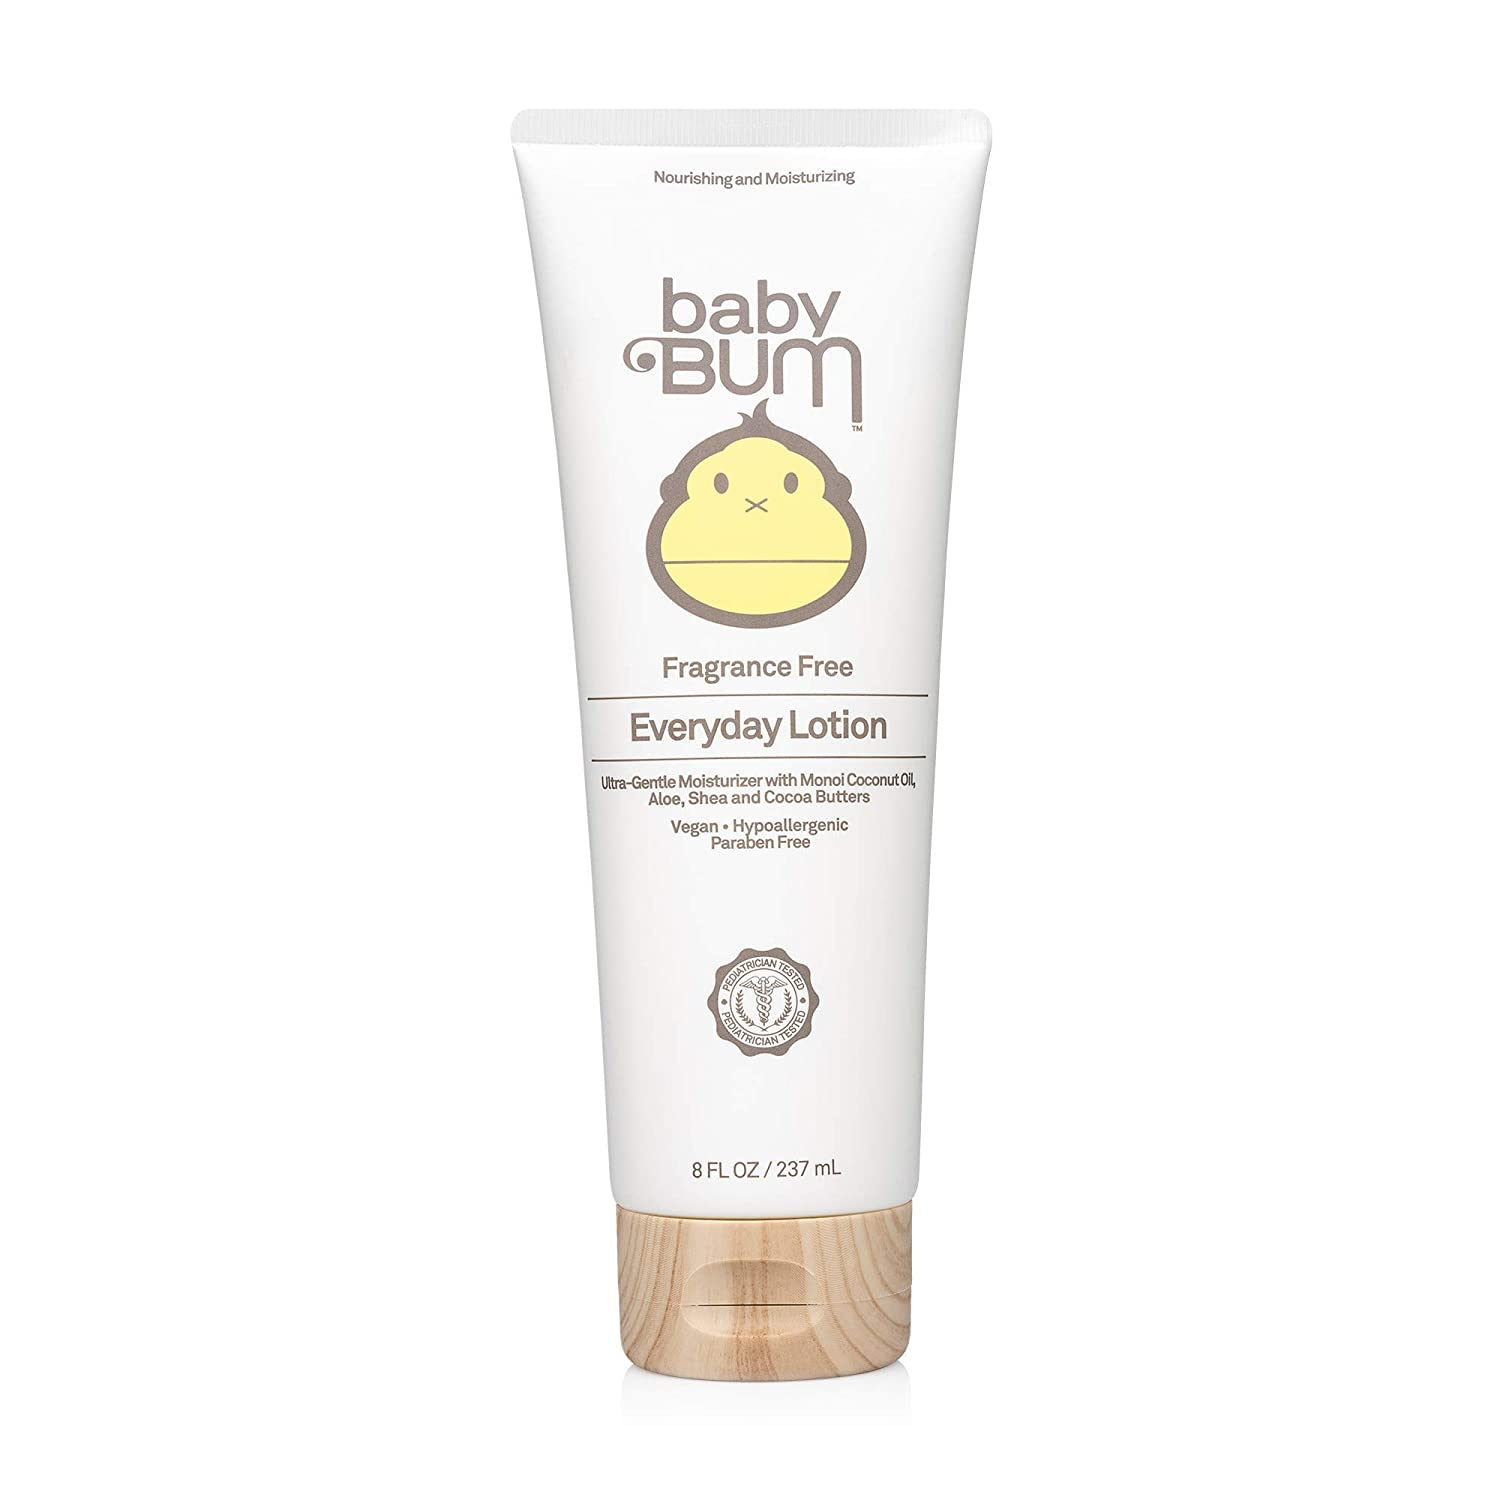 Baby Bum Everyday Lotion | Moisturizing Baby Body Lotion for Sensitive Skin with Shea and Cocoa Butter| Fragrance Free| Gluten Free and Vegan | 8 FL OZ